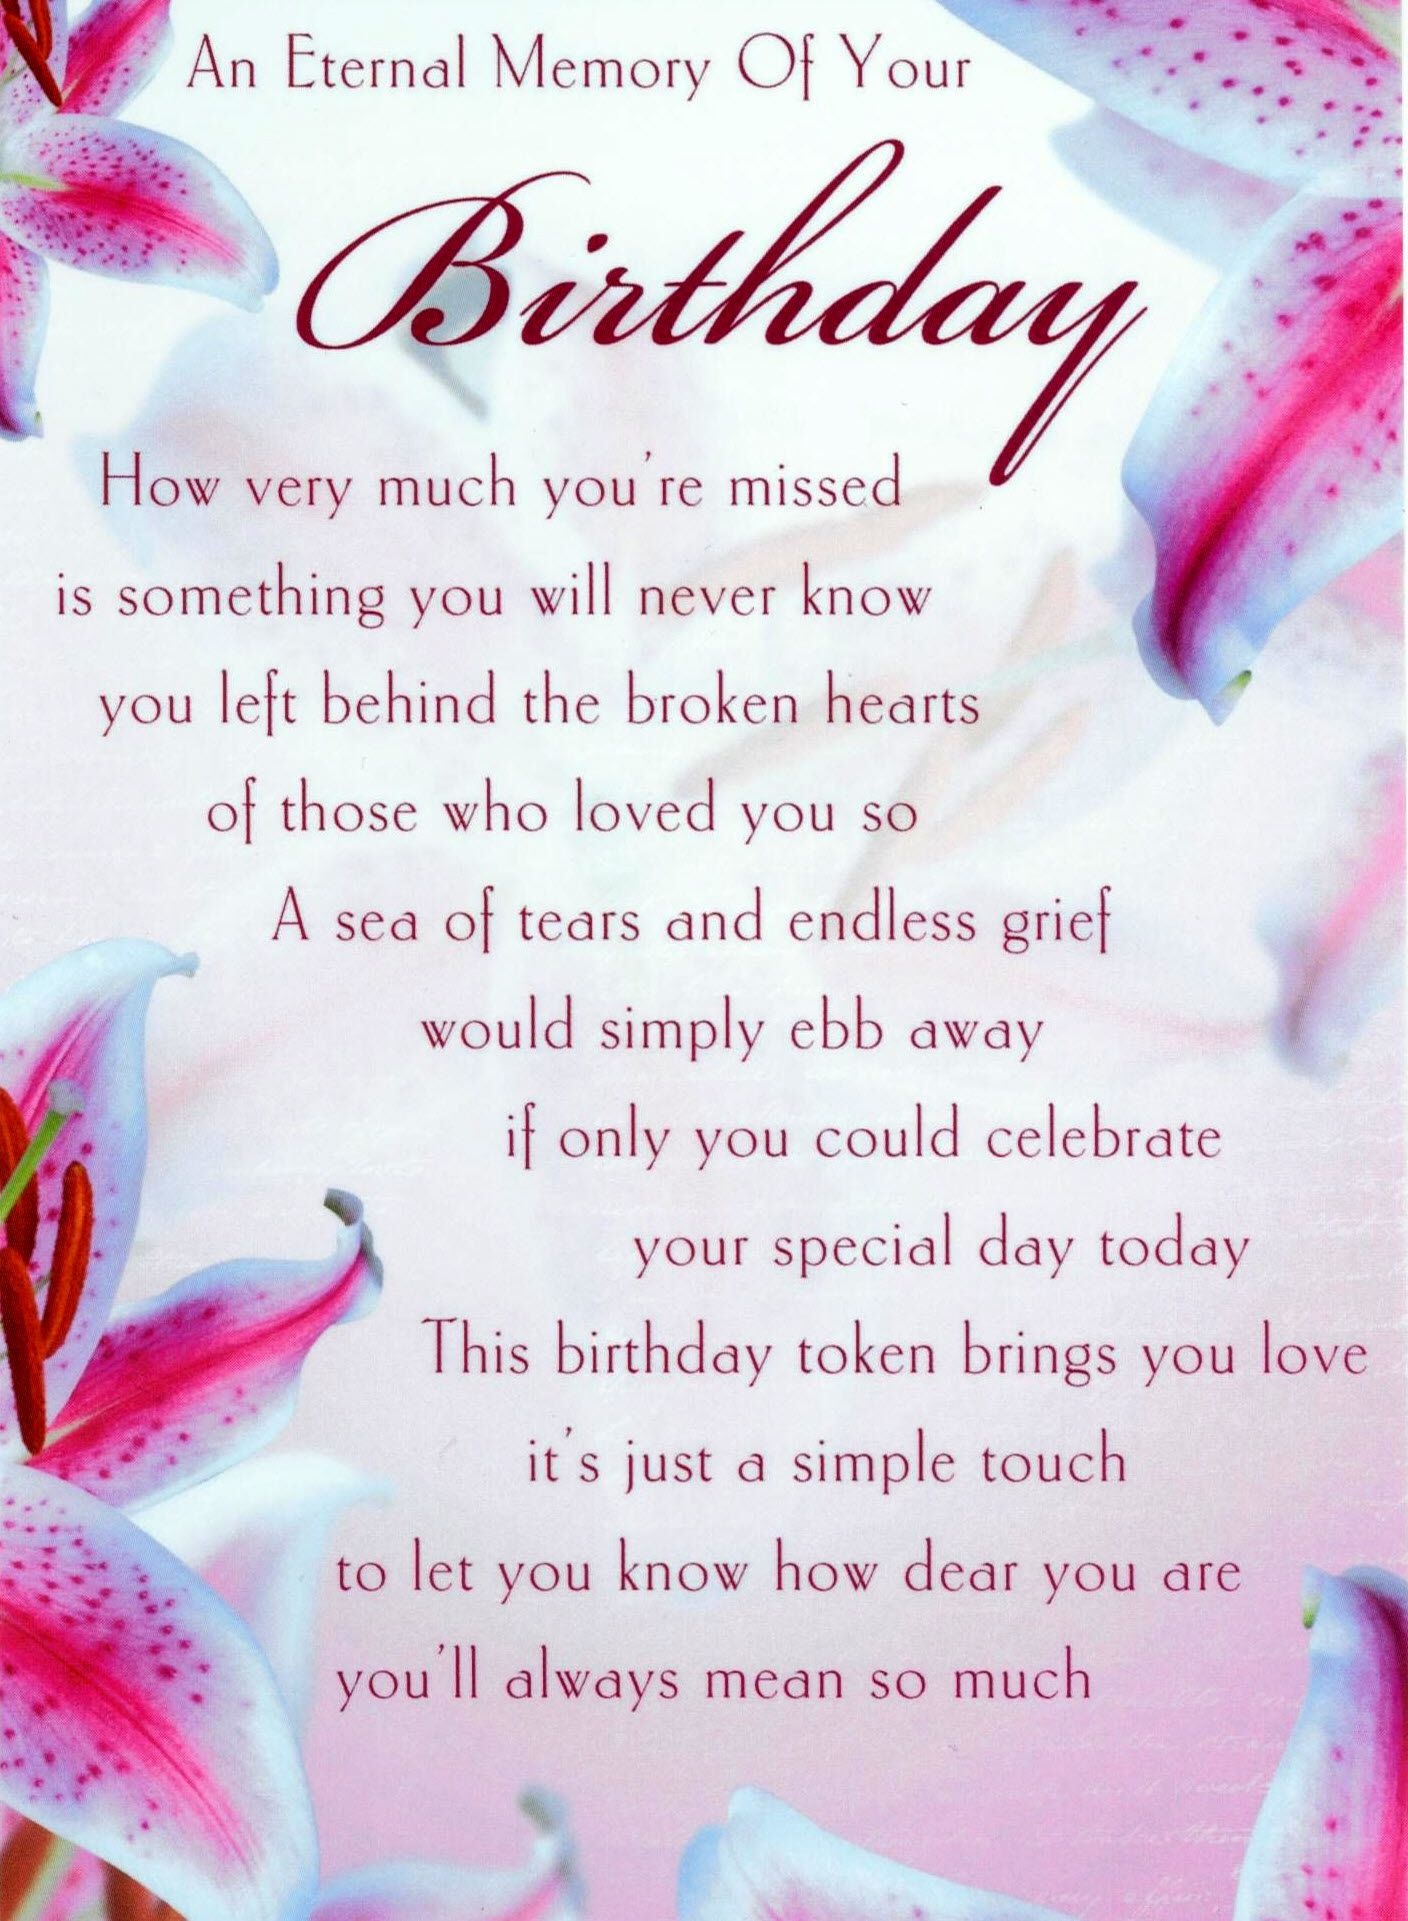 Happy Birthday Poem For A Mom That Passed Away. Happy